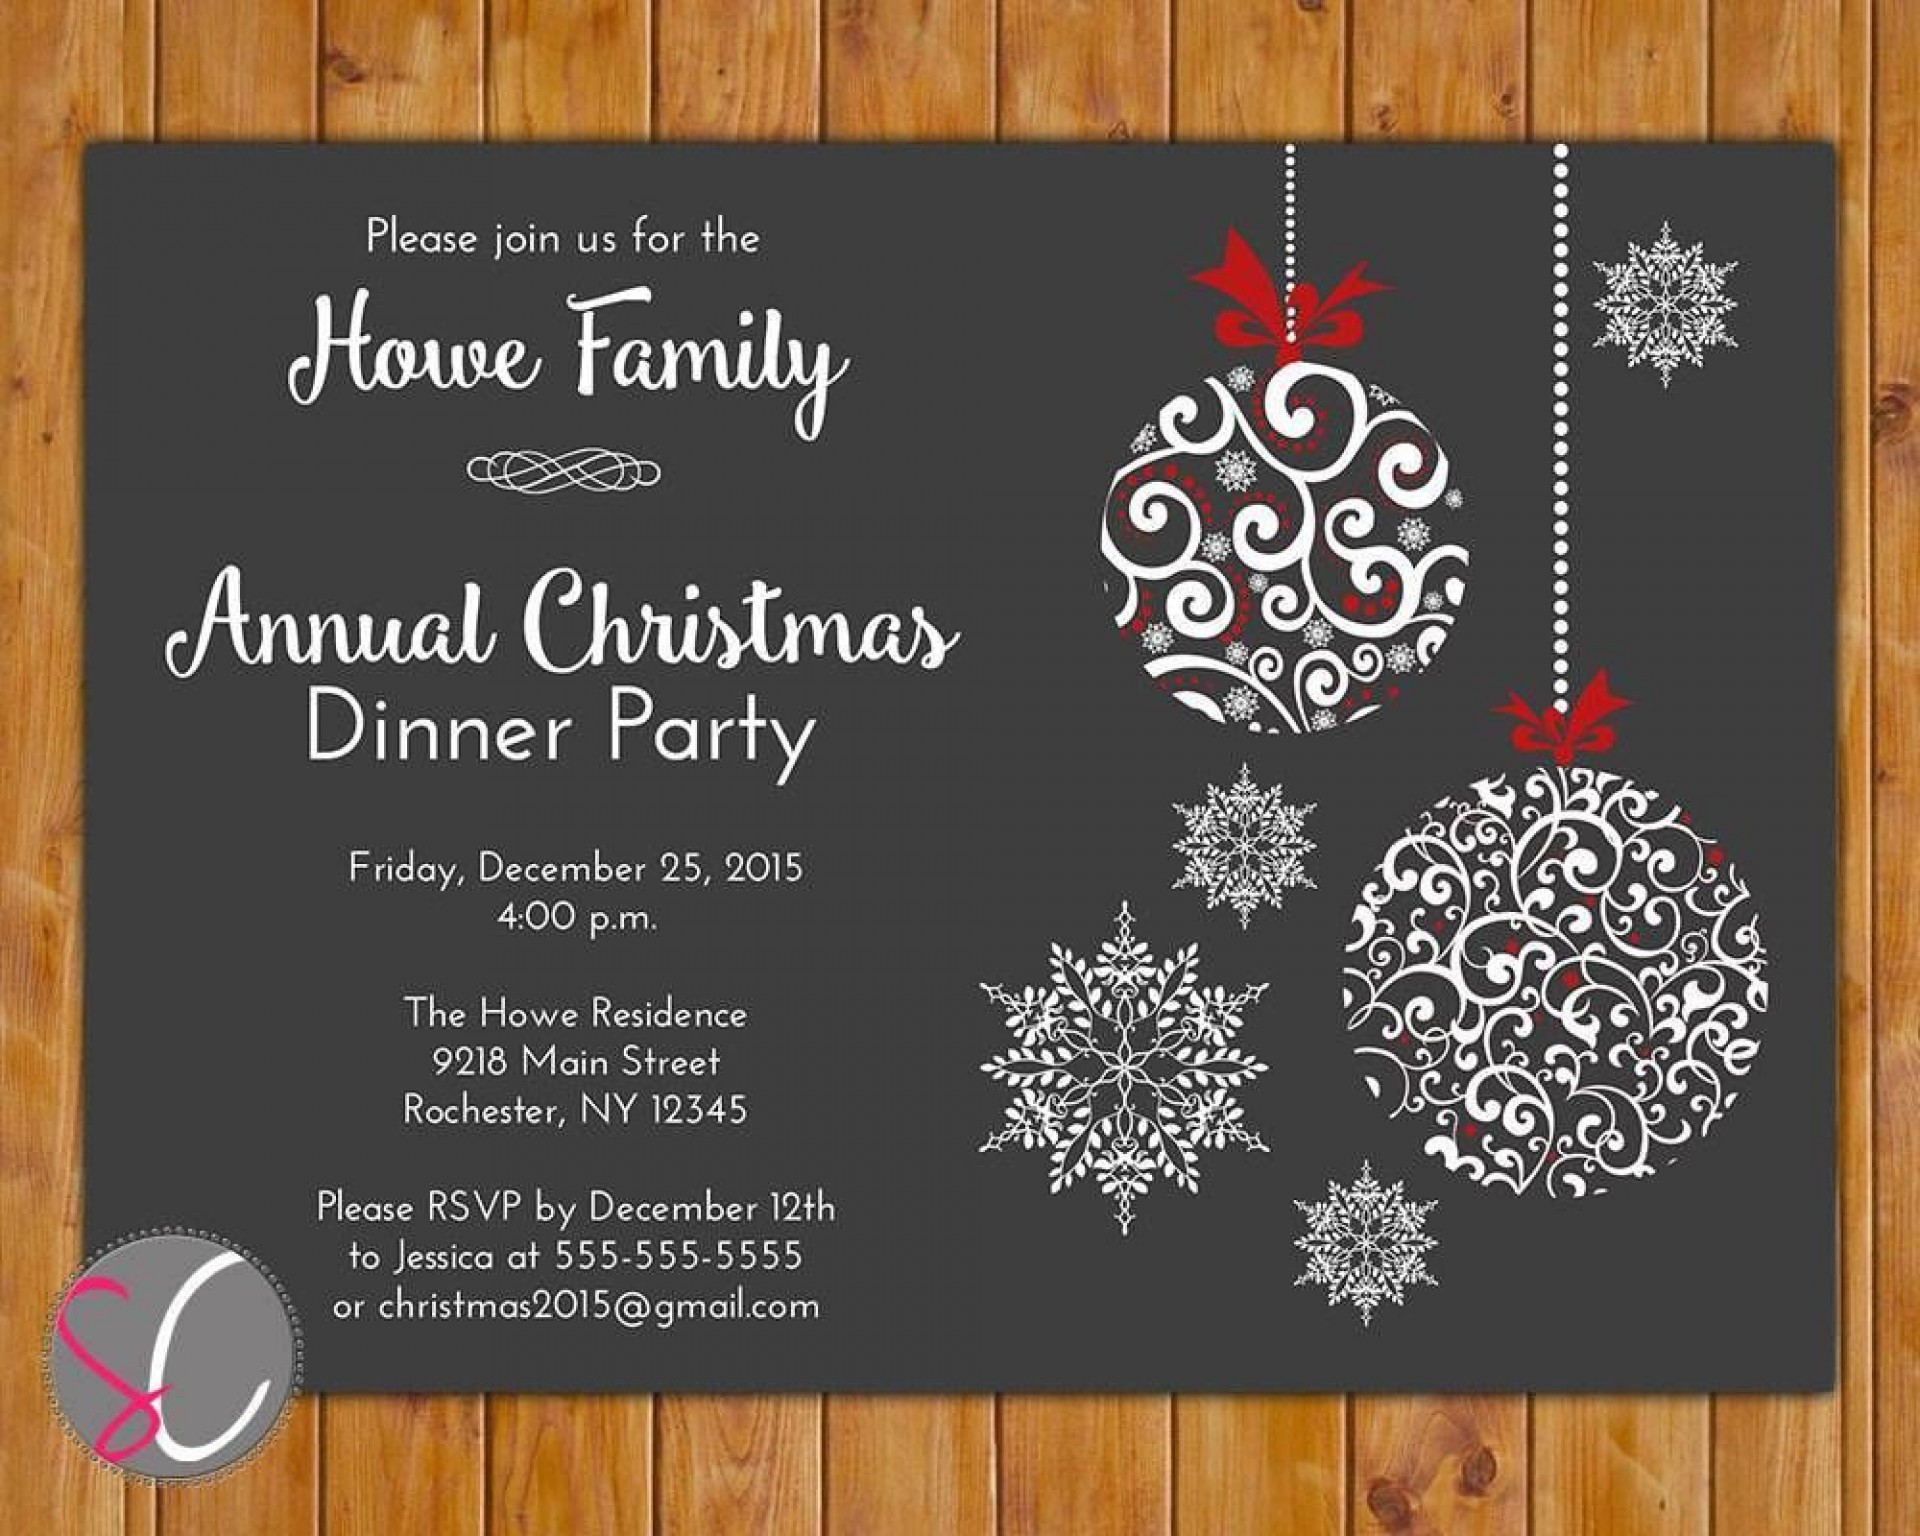 001 Shocking Xma Party Invite Template Free Inspiration  Holiday Invitation Word Printable Office Christma Download1920